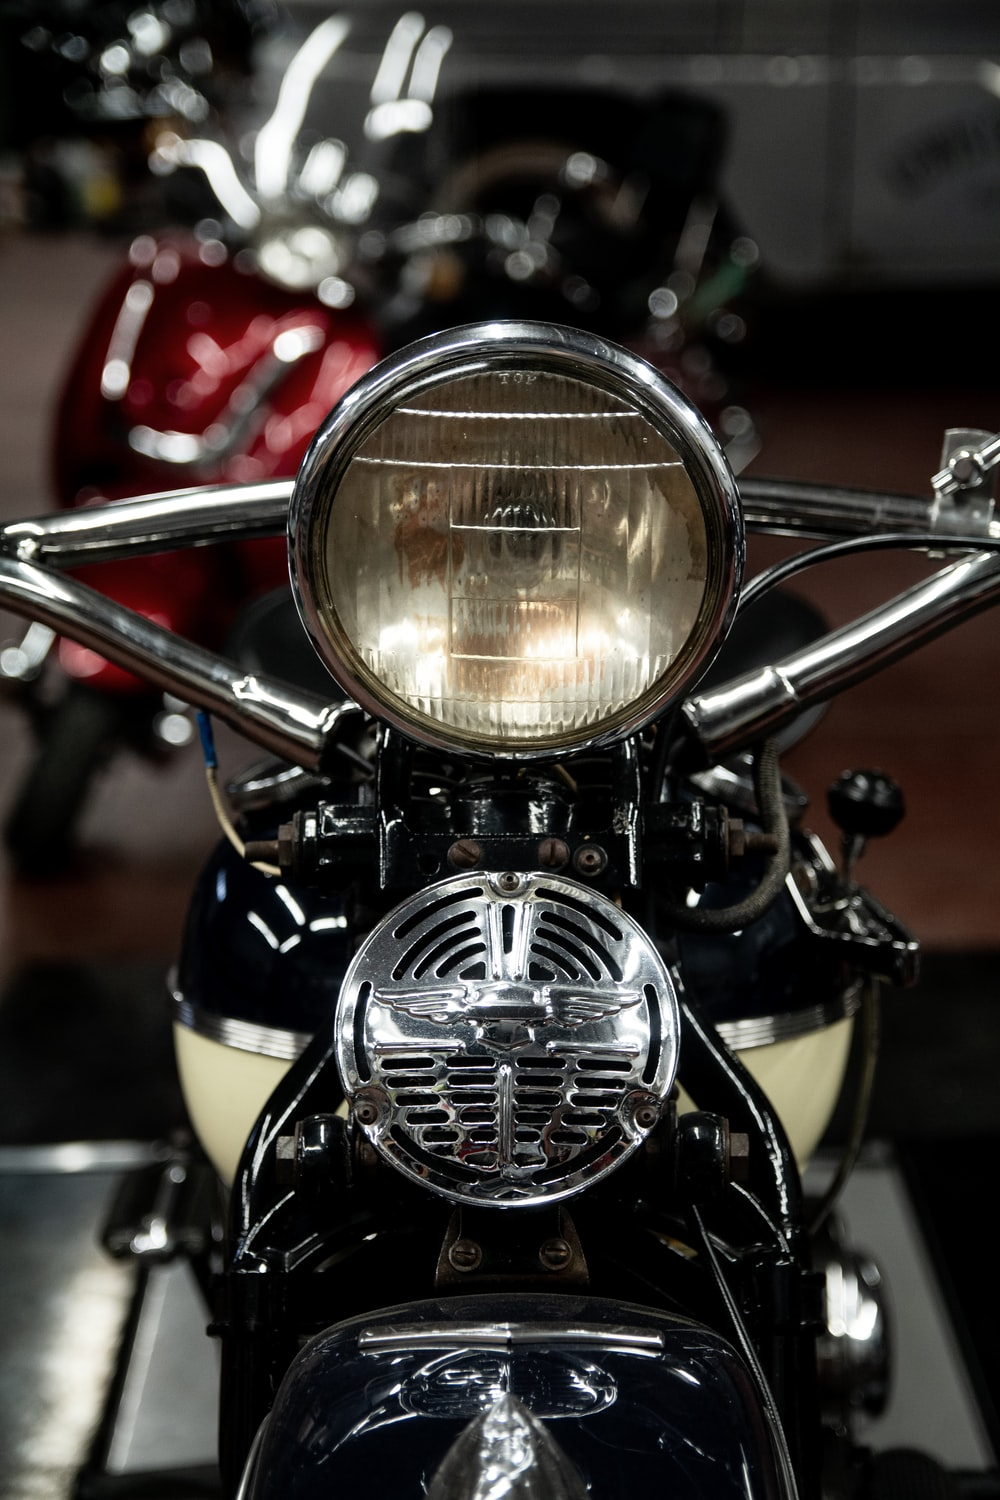 black and white cruiser motorcycle